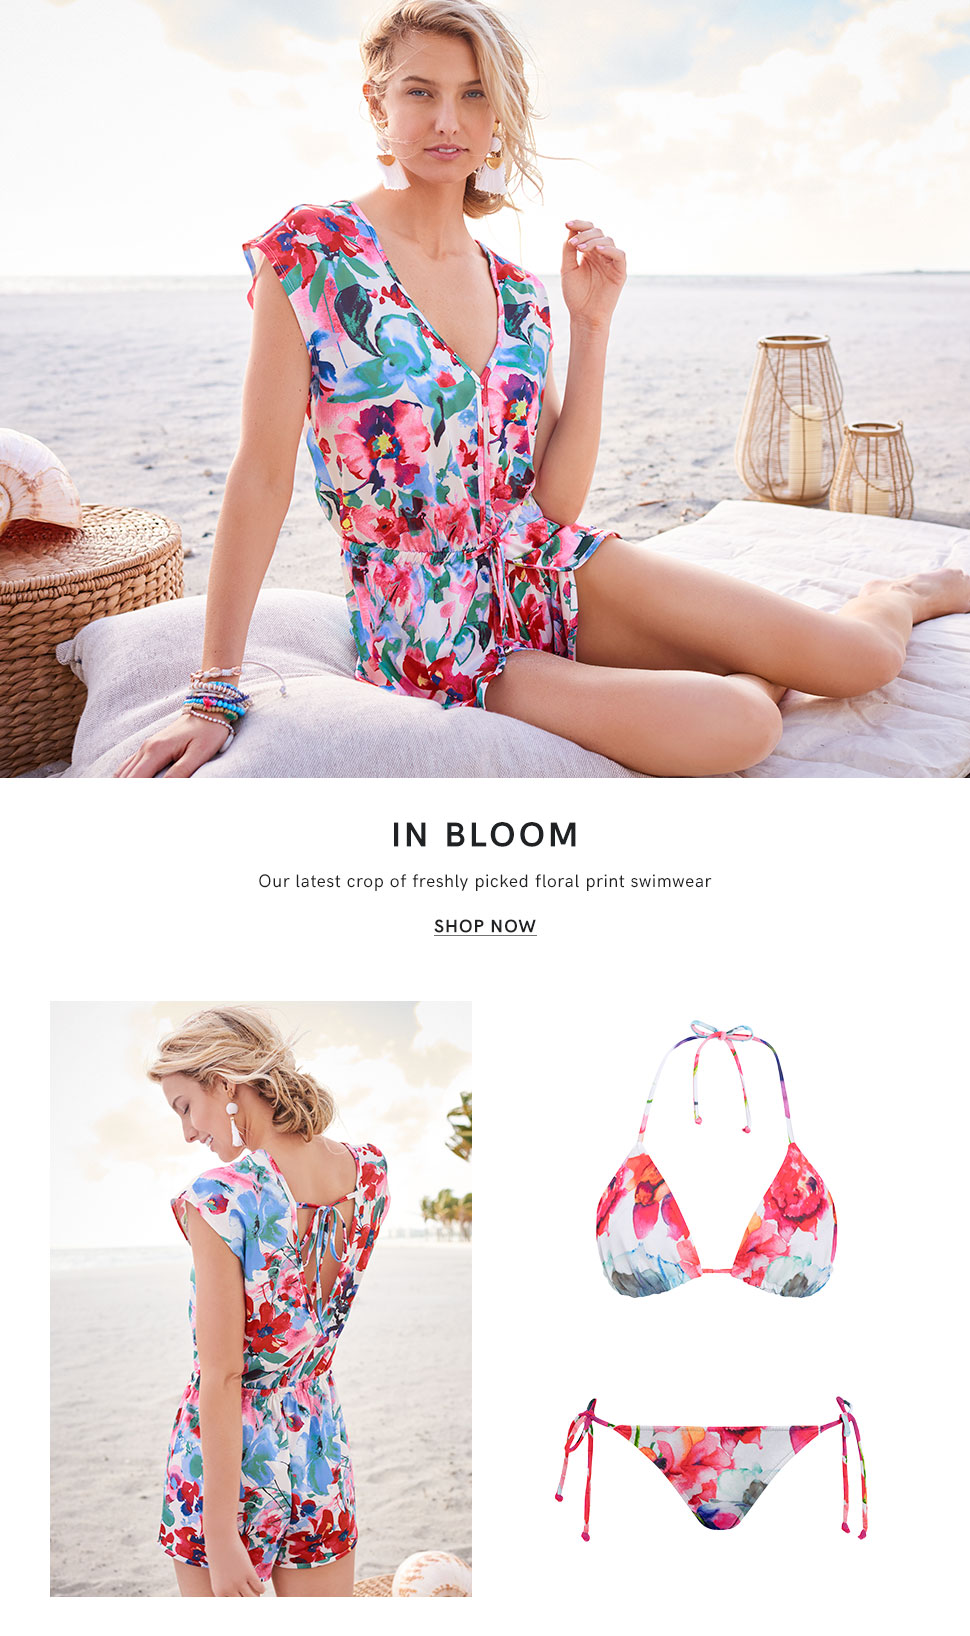 Discover our Fluid Floral swimwear collection.